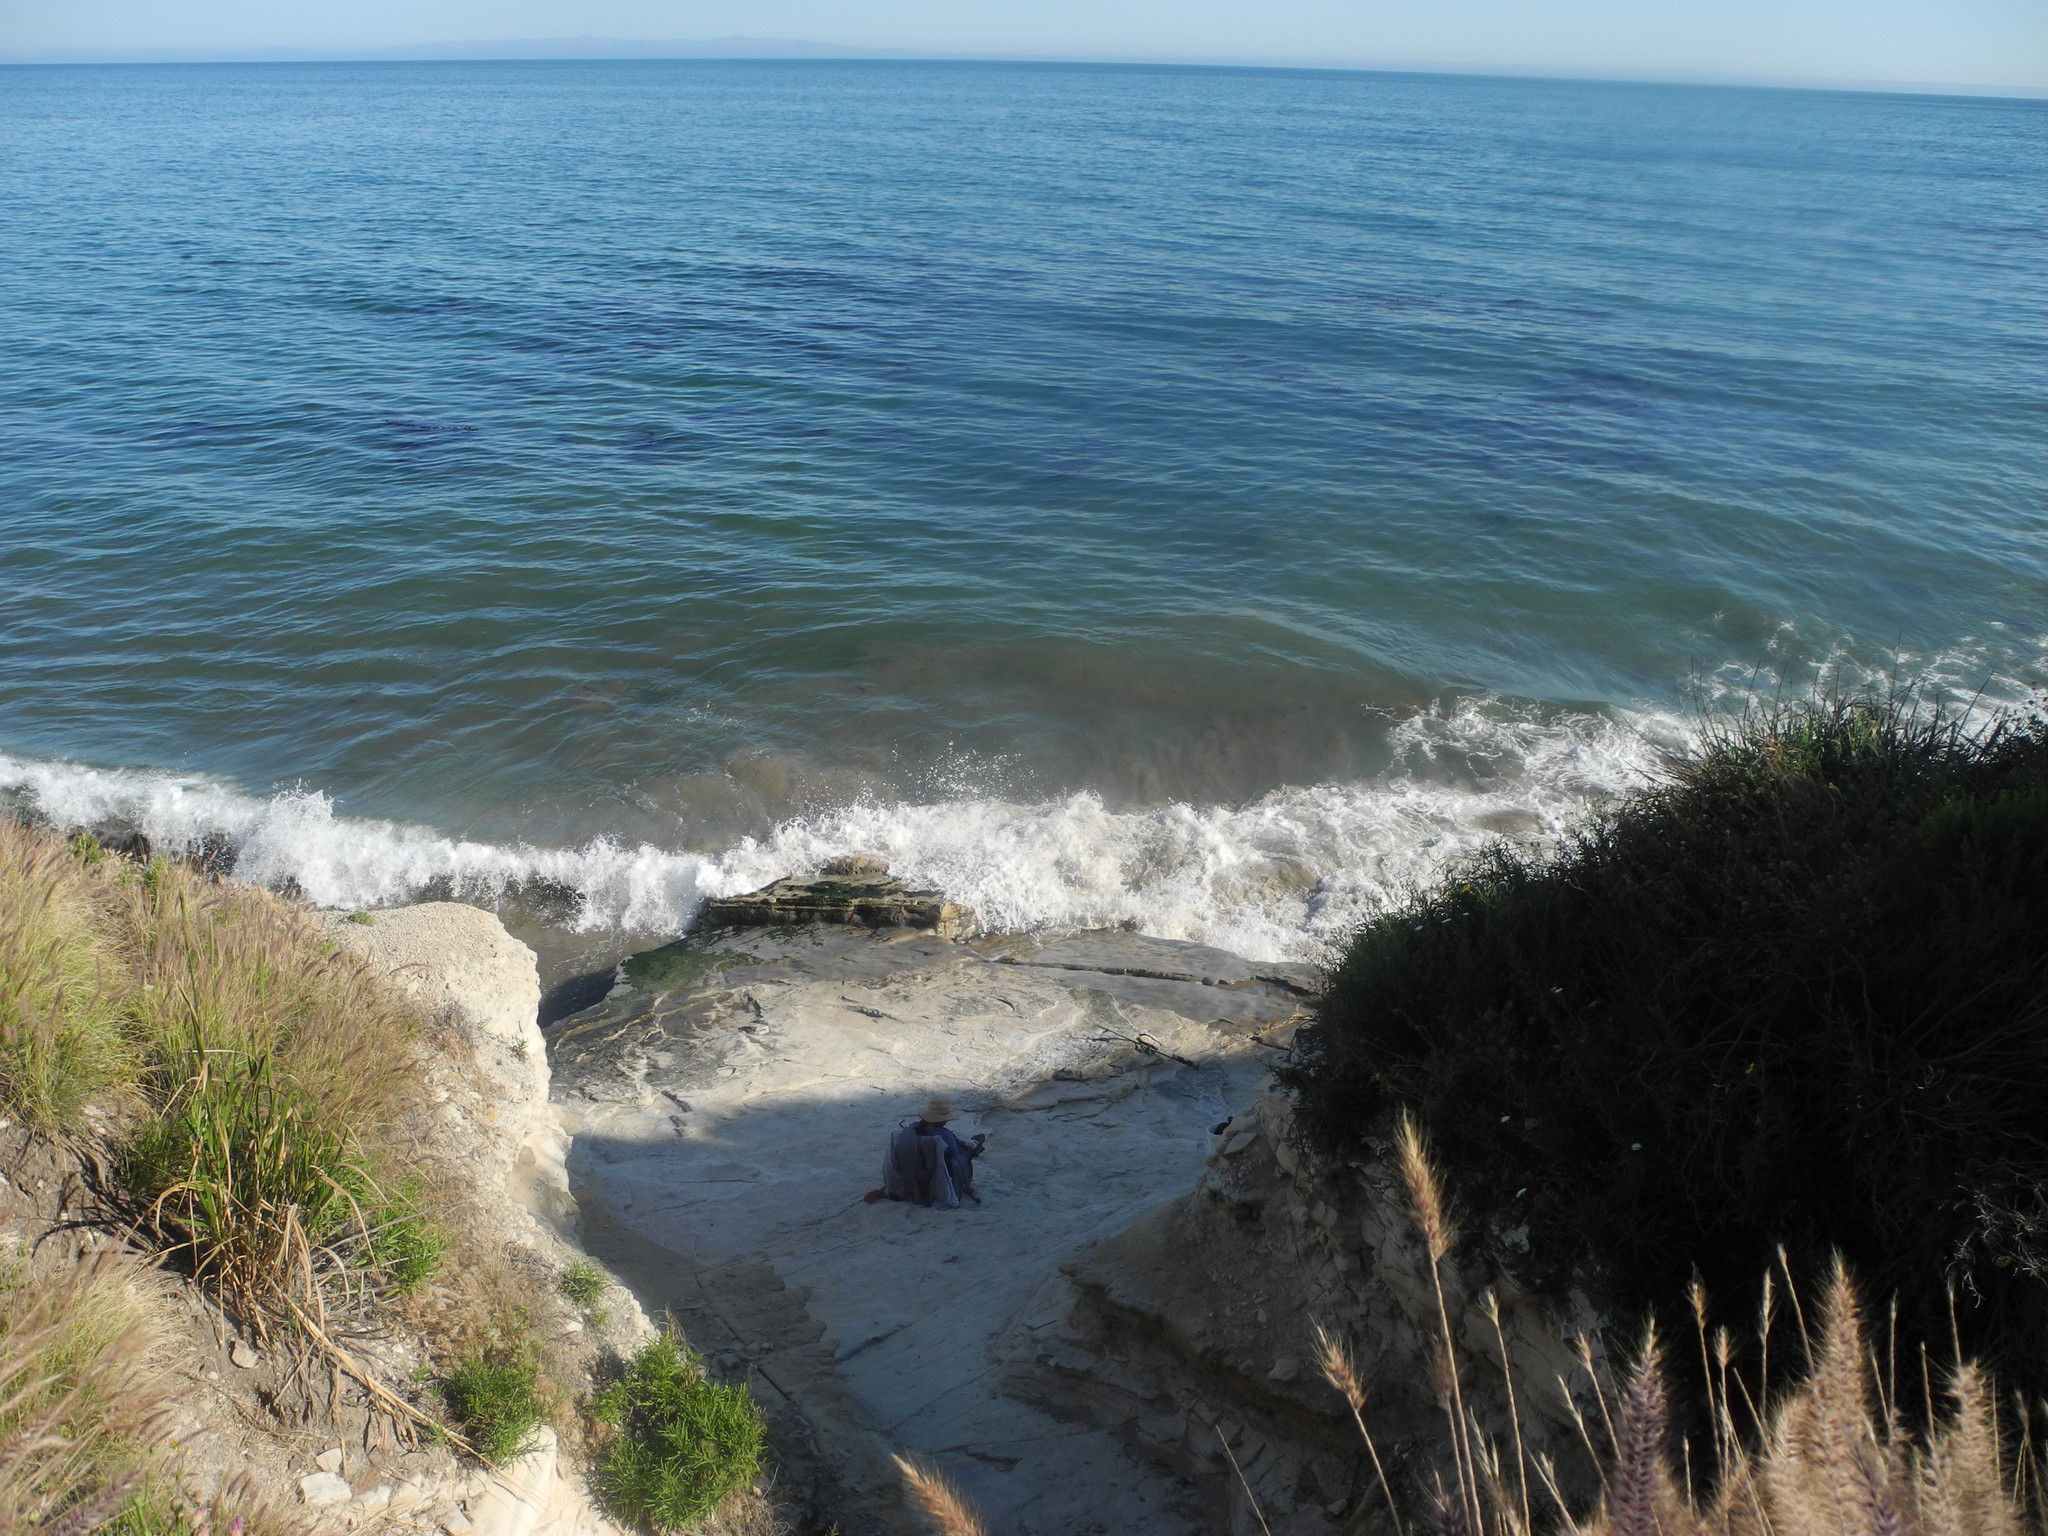 A beachgoer enjoys the water by Aniso Trail between Refugio State Beach and El Capitan State Beach, May 20, 2017.